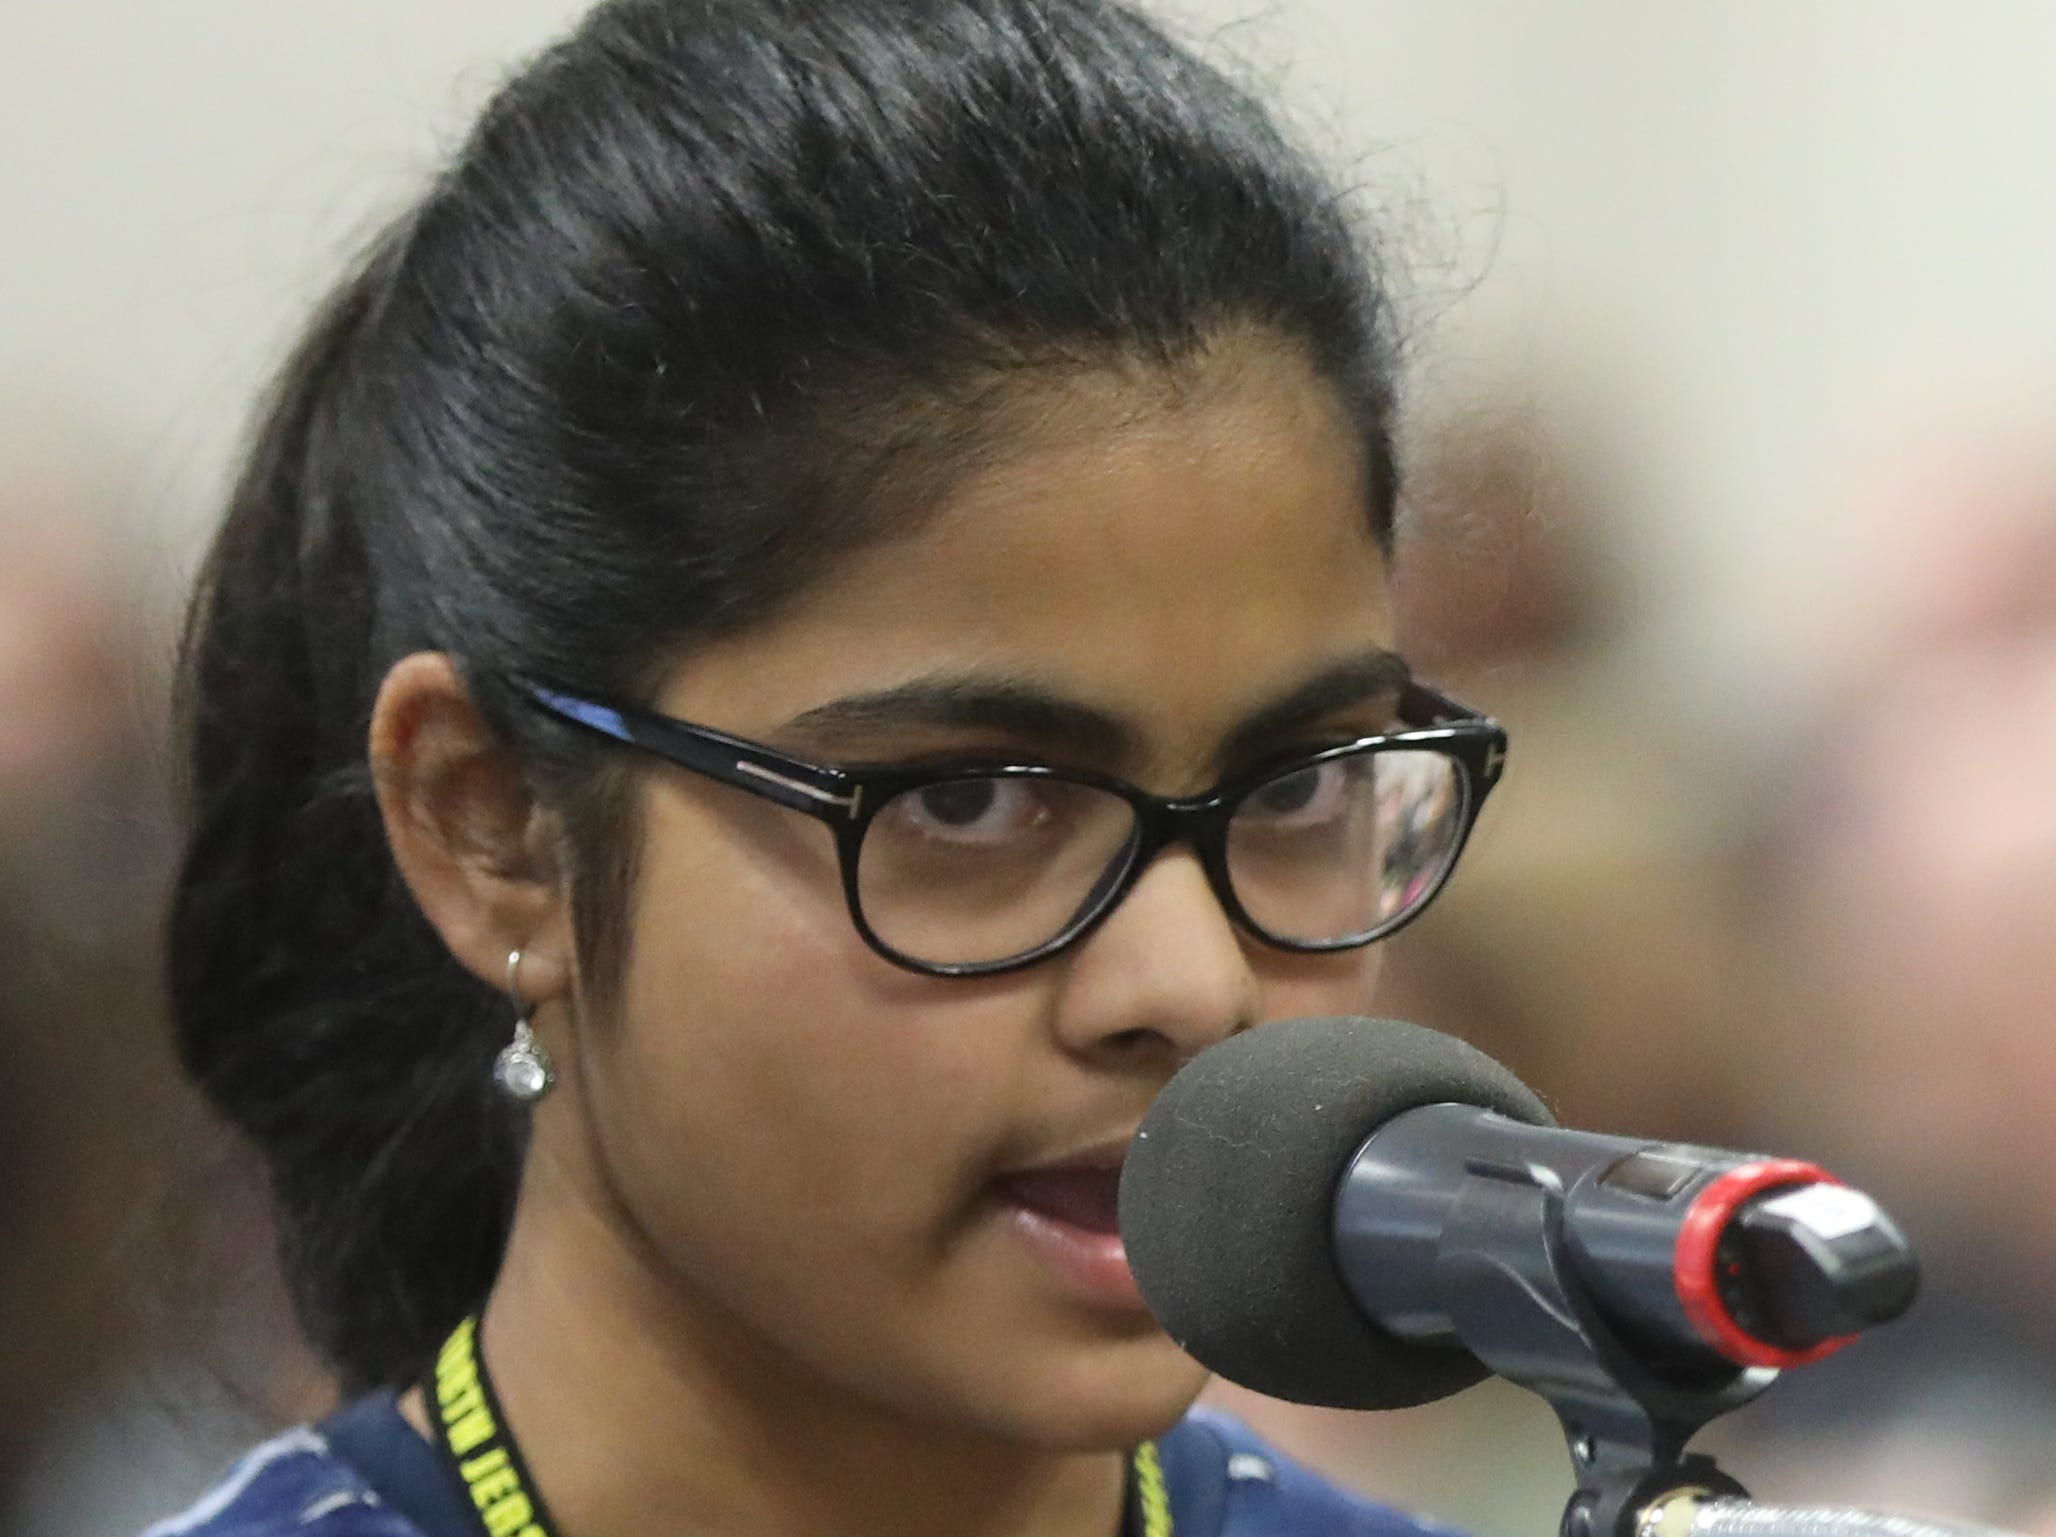 Satwika Kaivalya, of Rutherford, competes in the first round of the 2019 North Jersey Spelling Bee, in Paramus. Thursday, March 14, 2019